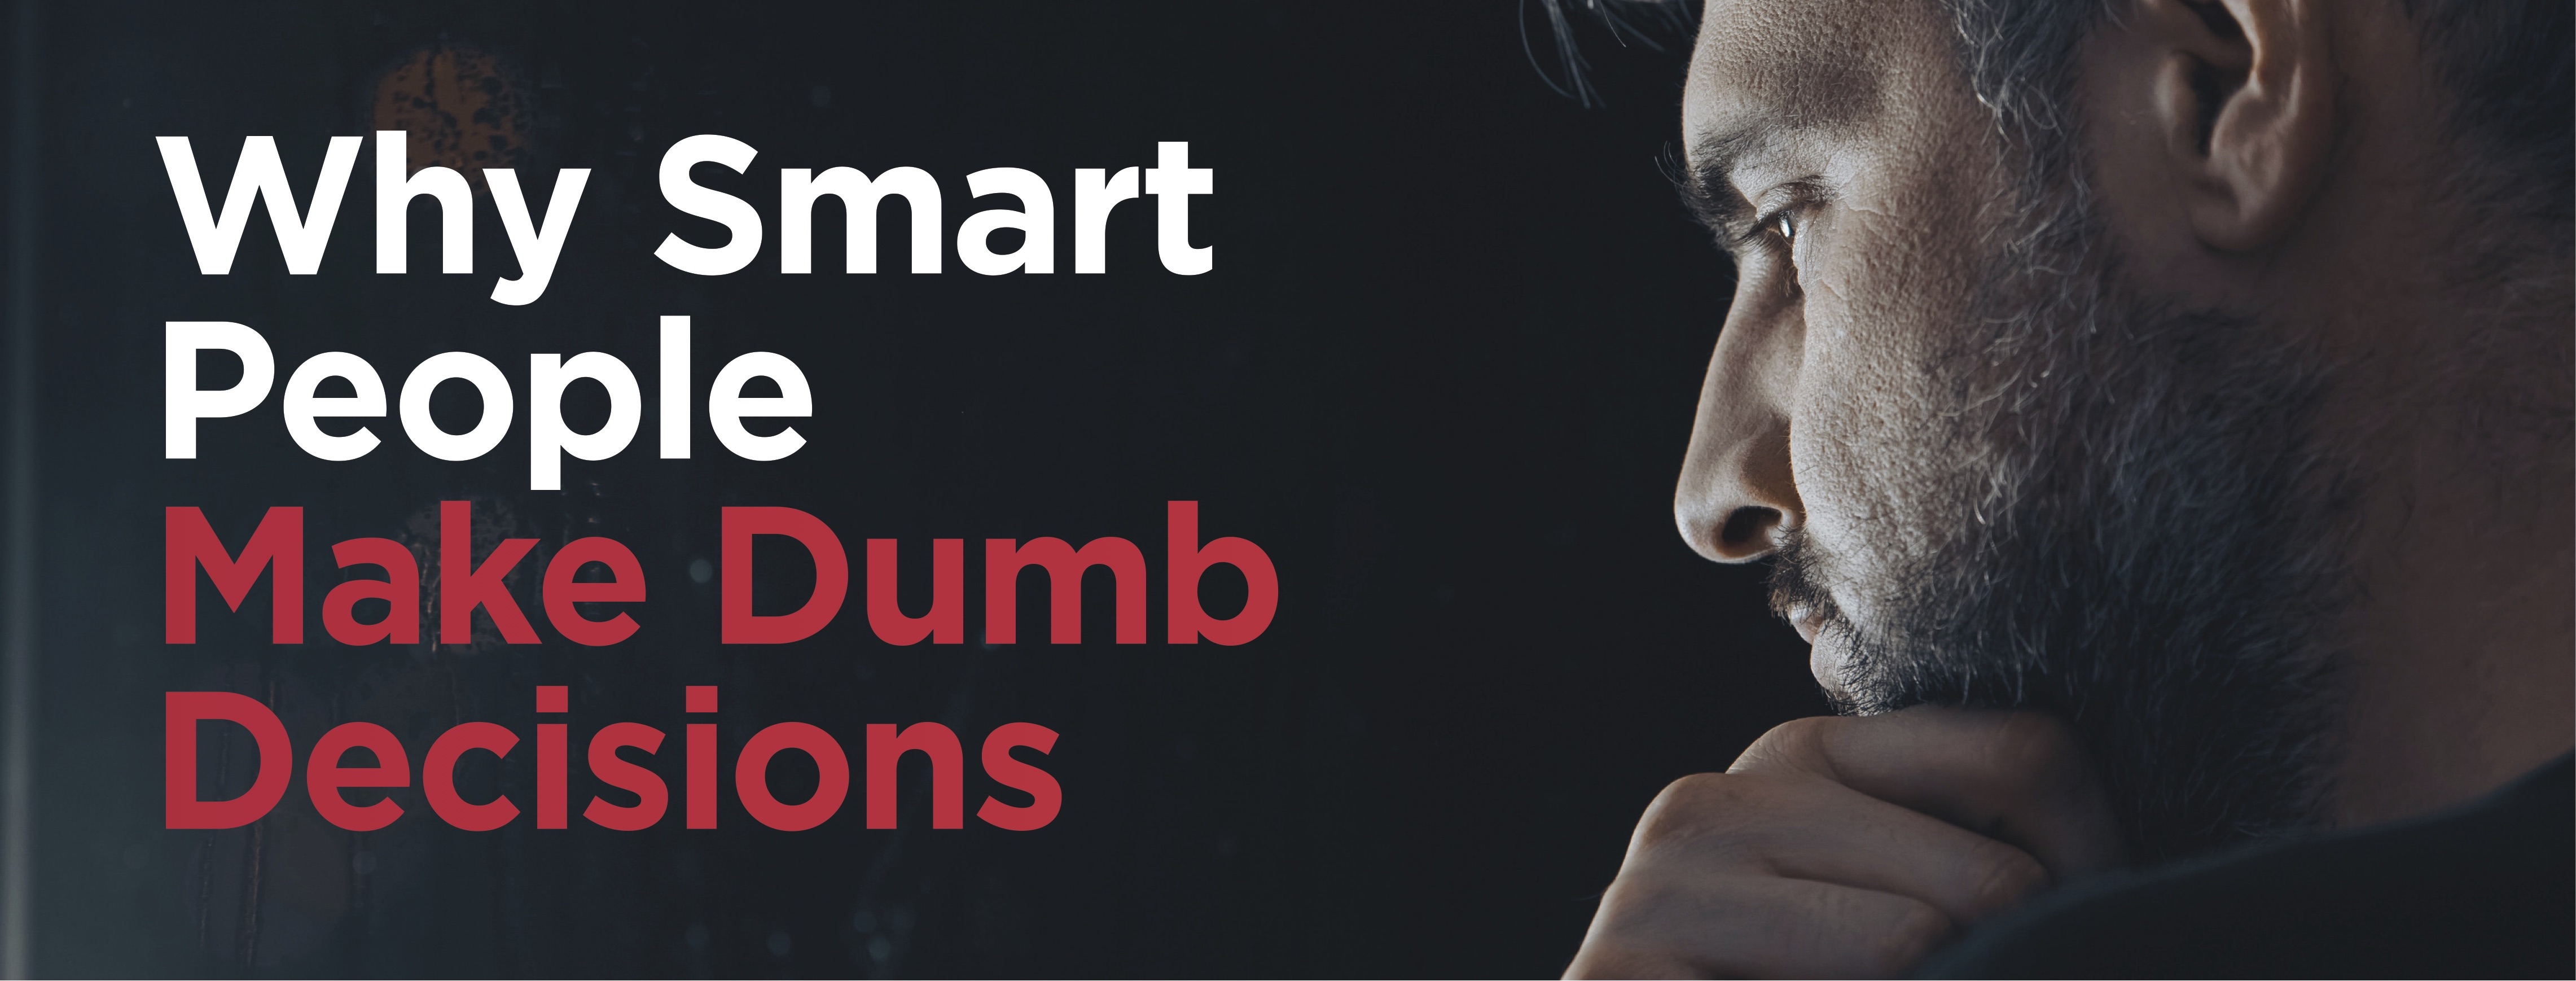 Why Smart People Make Dumb Decisions